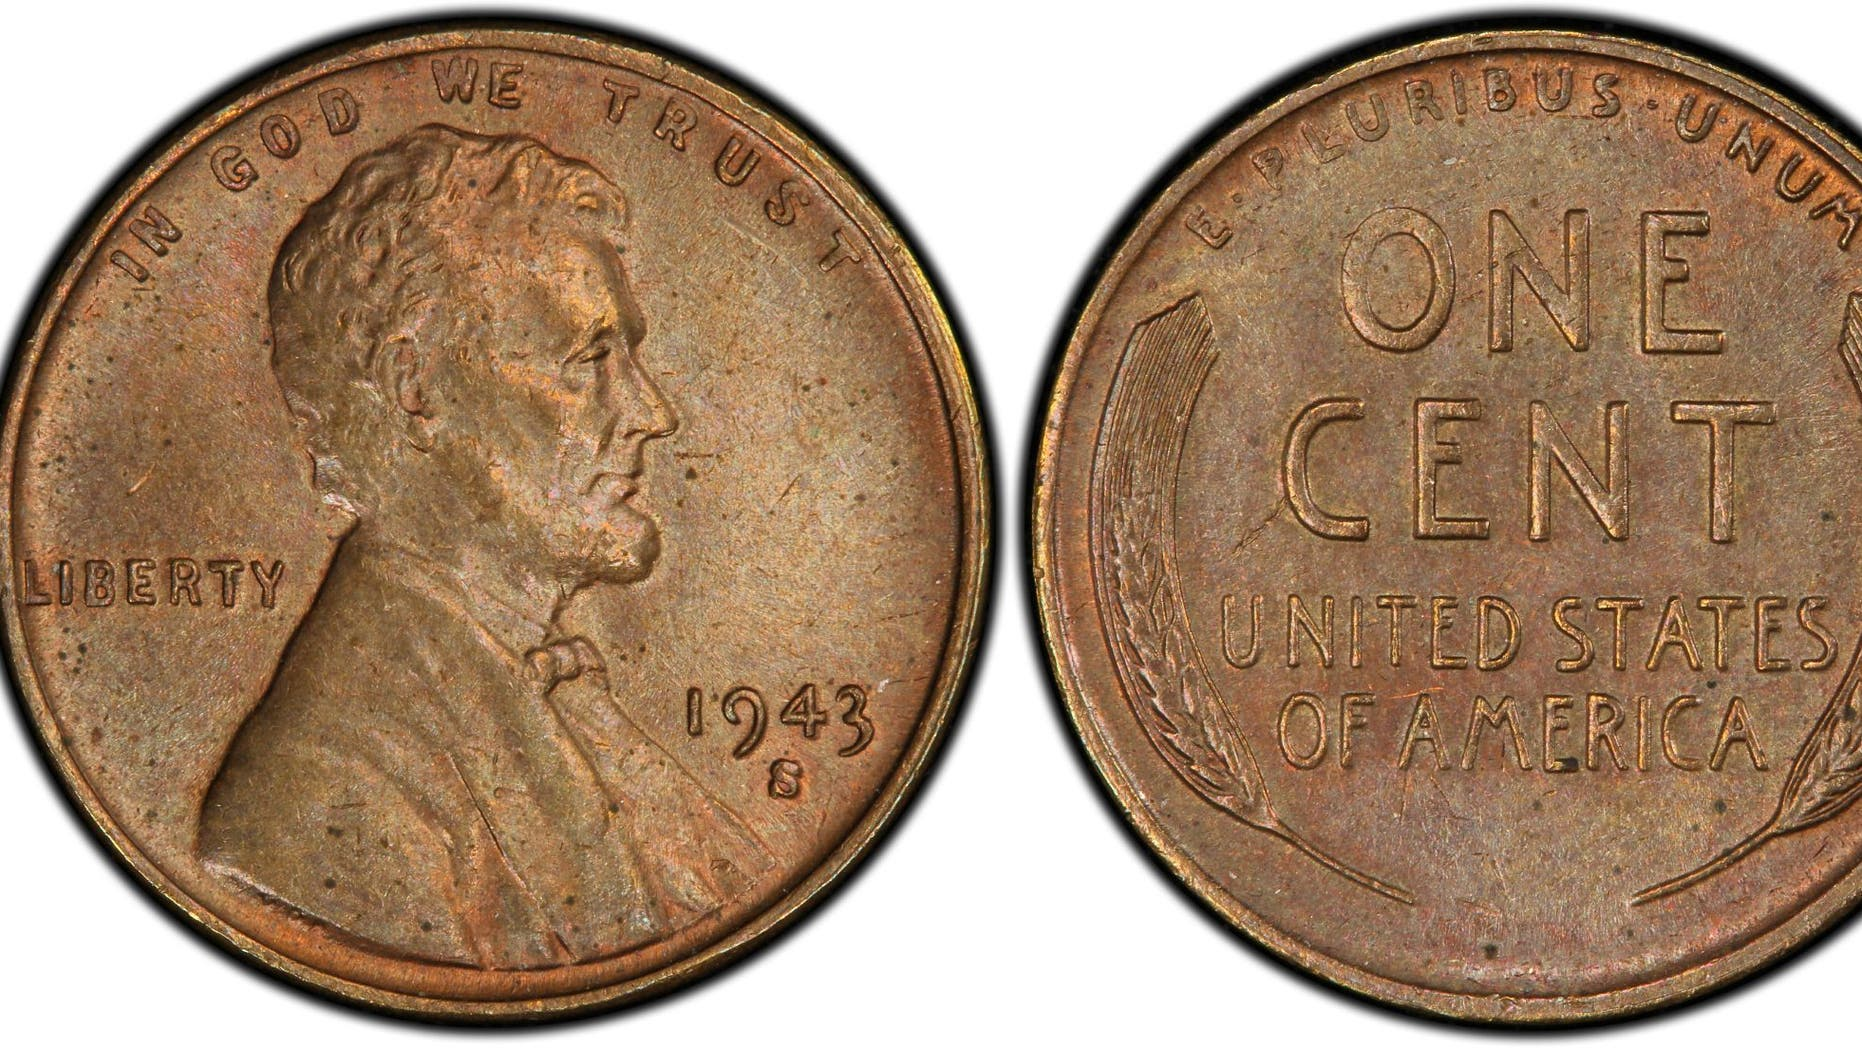 Rare 1943 Lincoln penny sells for $1 million | Fox News